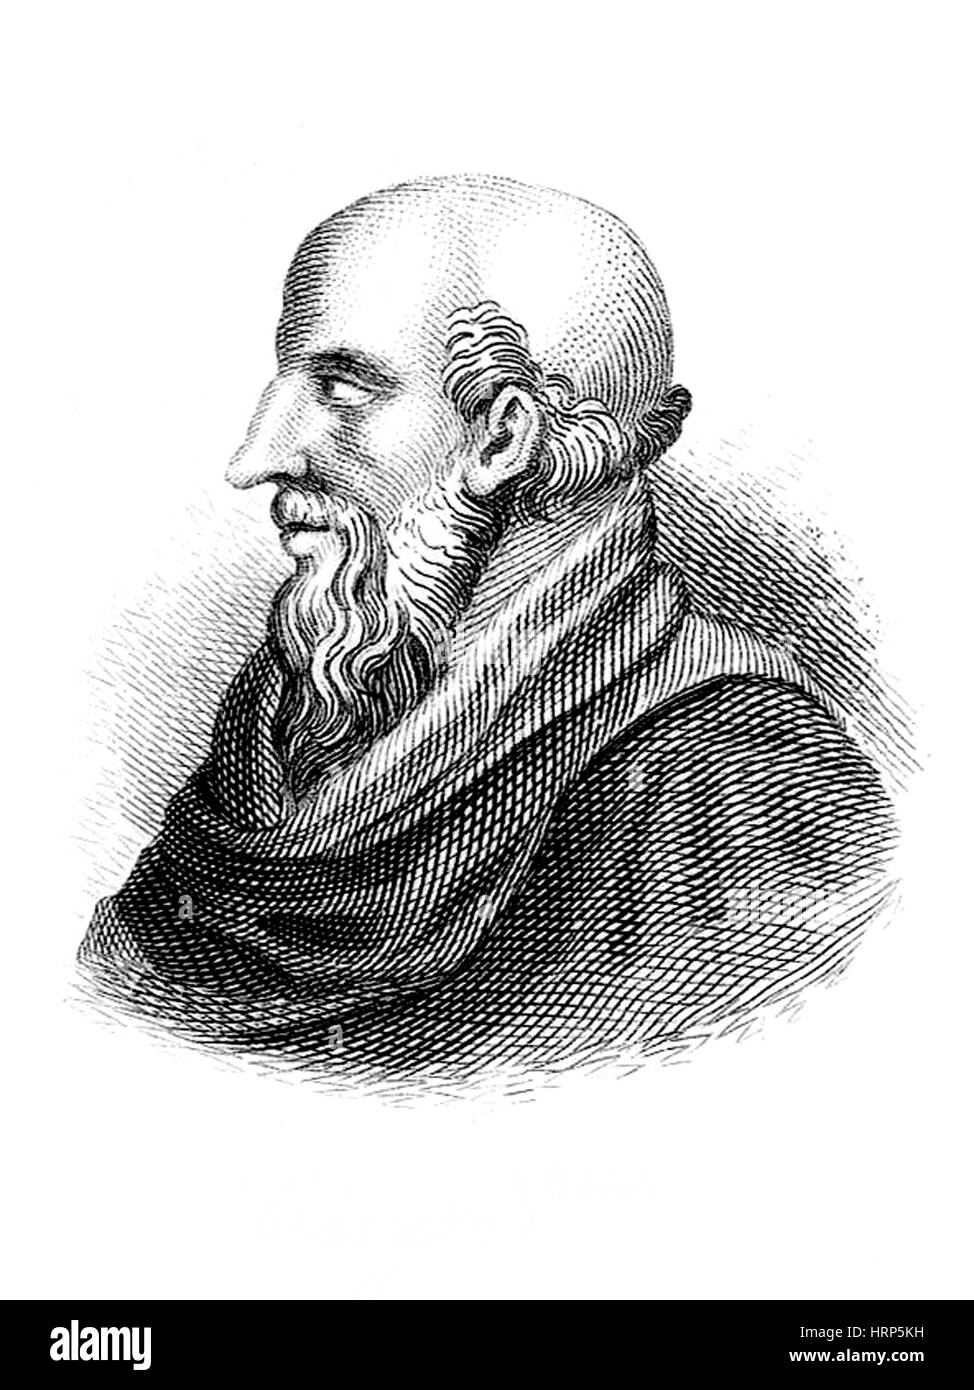 Chrysippus, Ancient Greek Philosopher - Stock Image